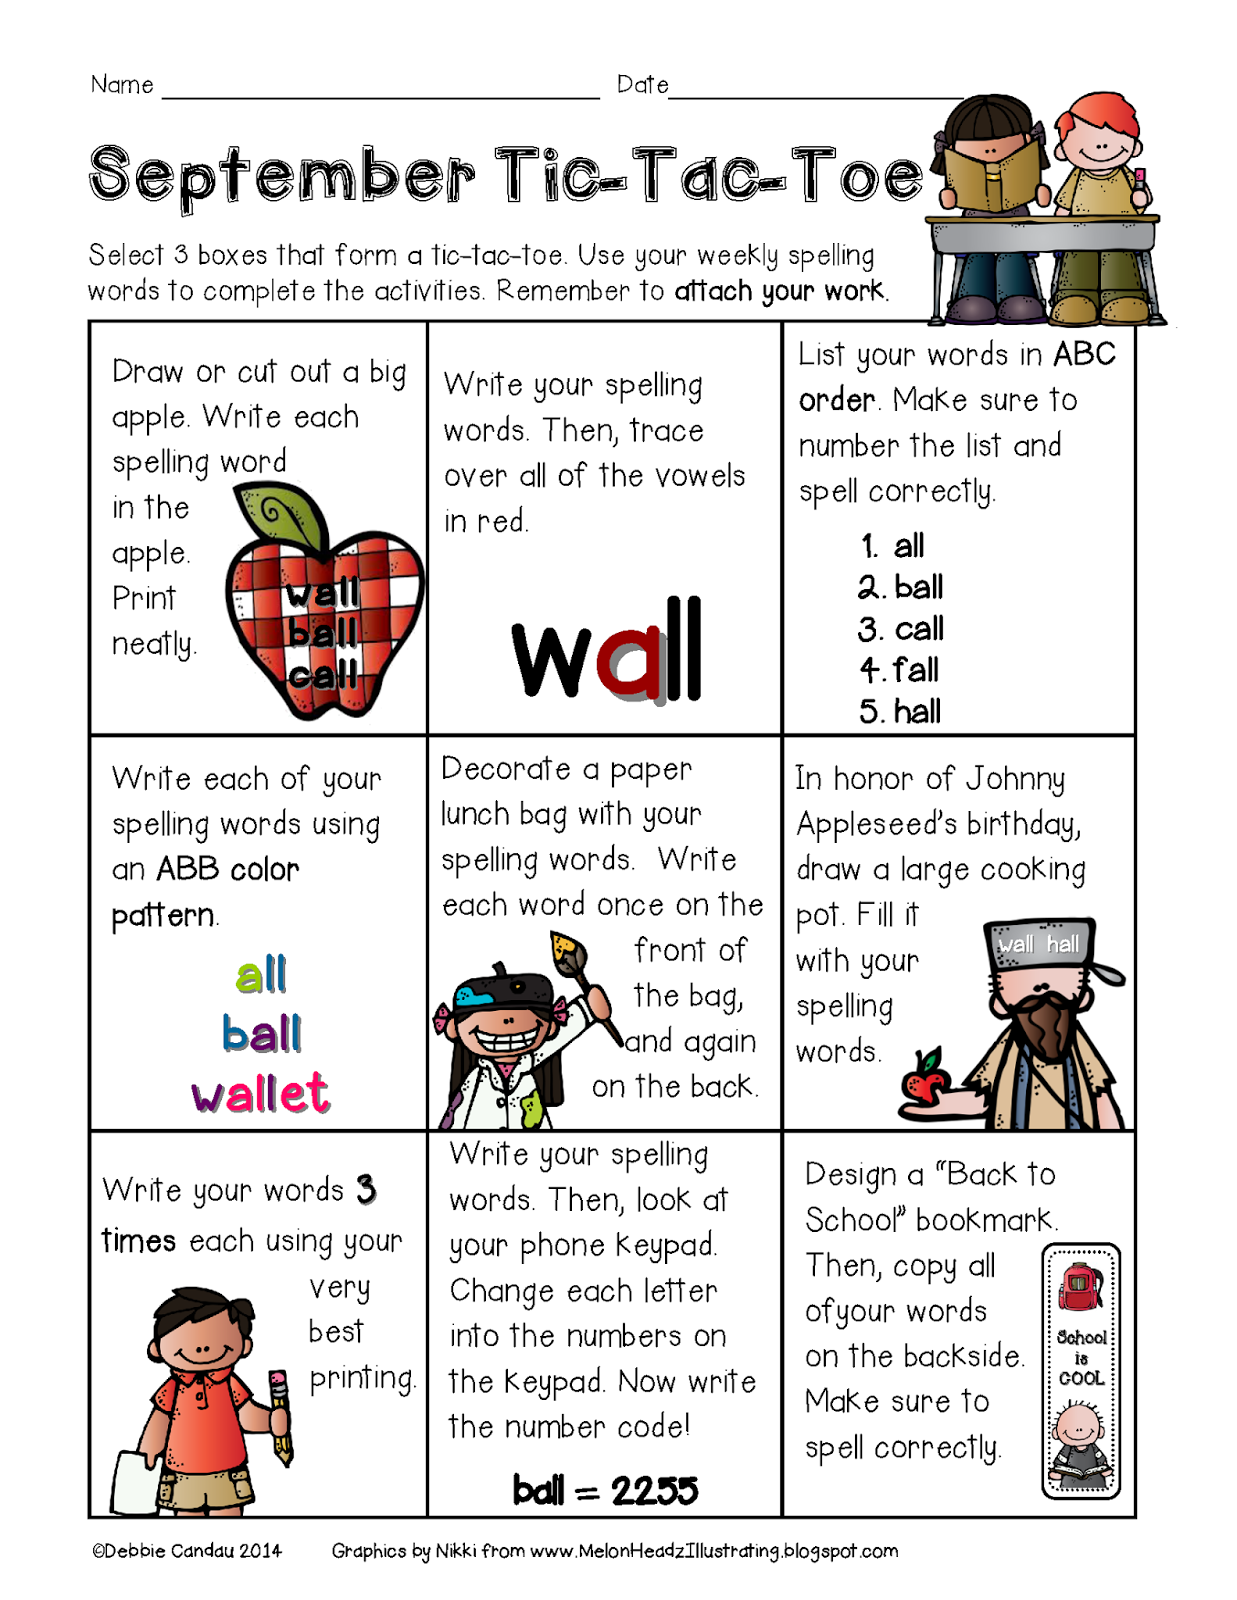 Sailing Through 1st Grade July And September Spelling Tic